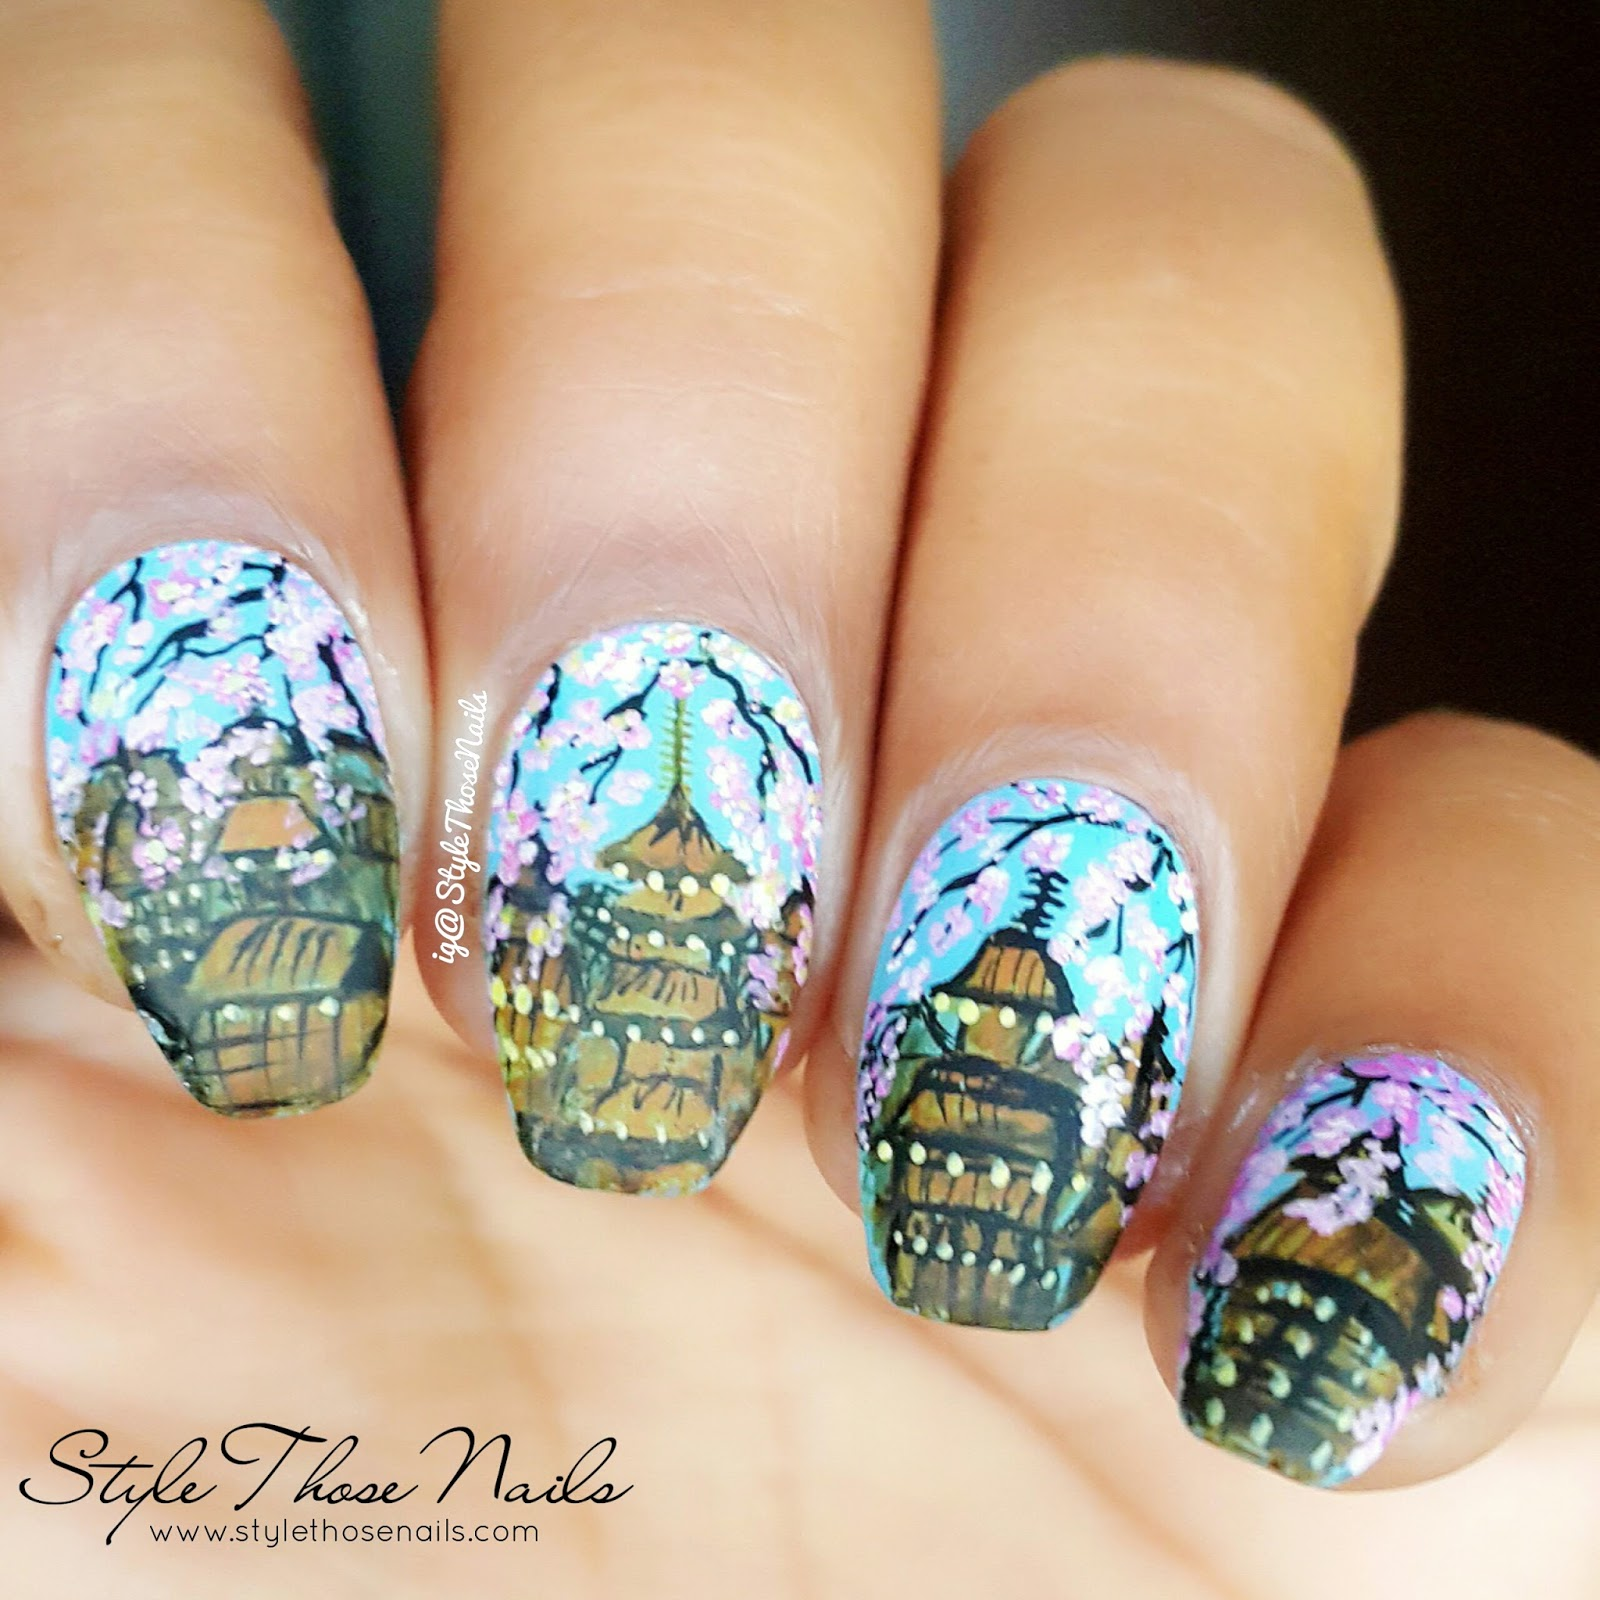 Style those nails geisha and cherry blossom nail art spring i have tutorial linked at the end of the post also find the collage of spring nail designs by instagram nail buddies below enjoy prinsesfo Gallery